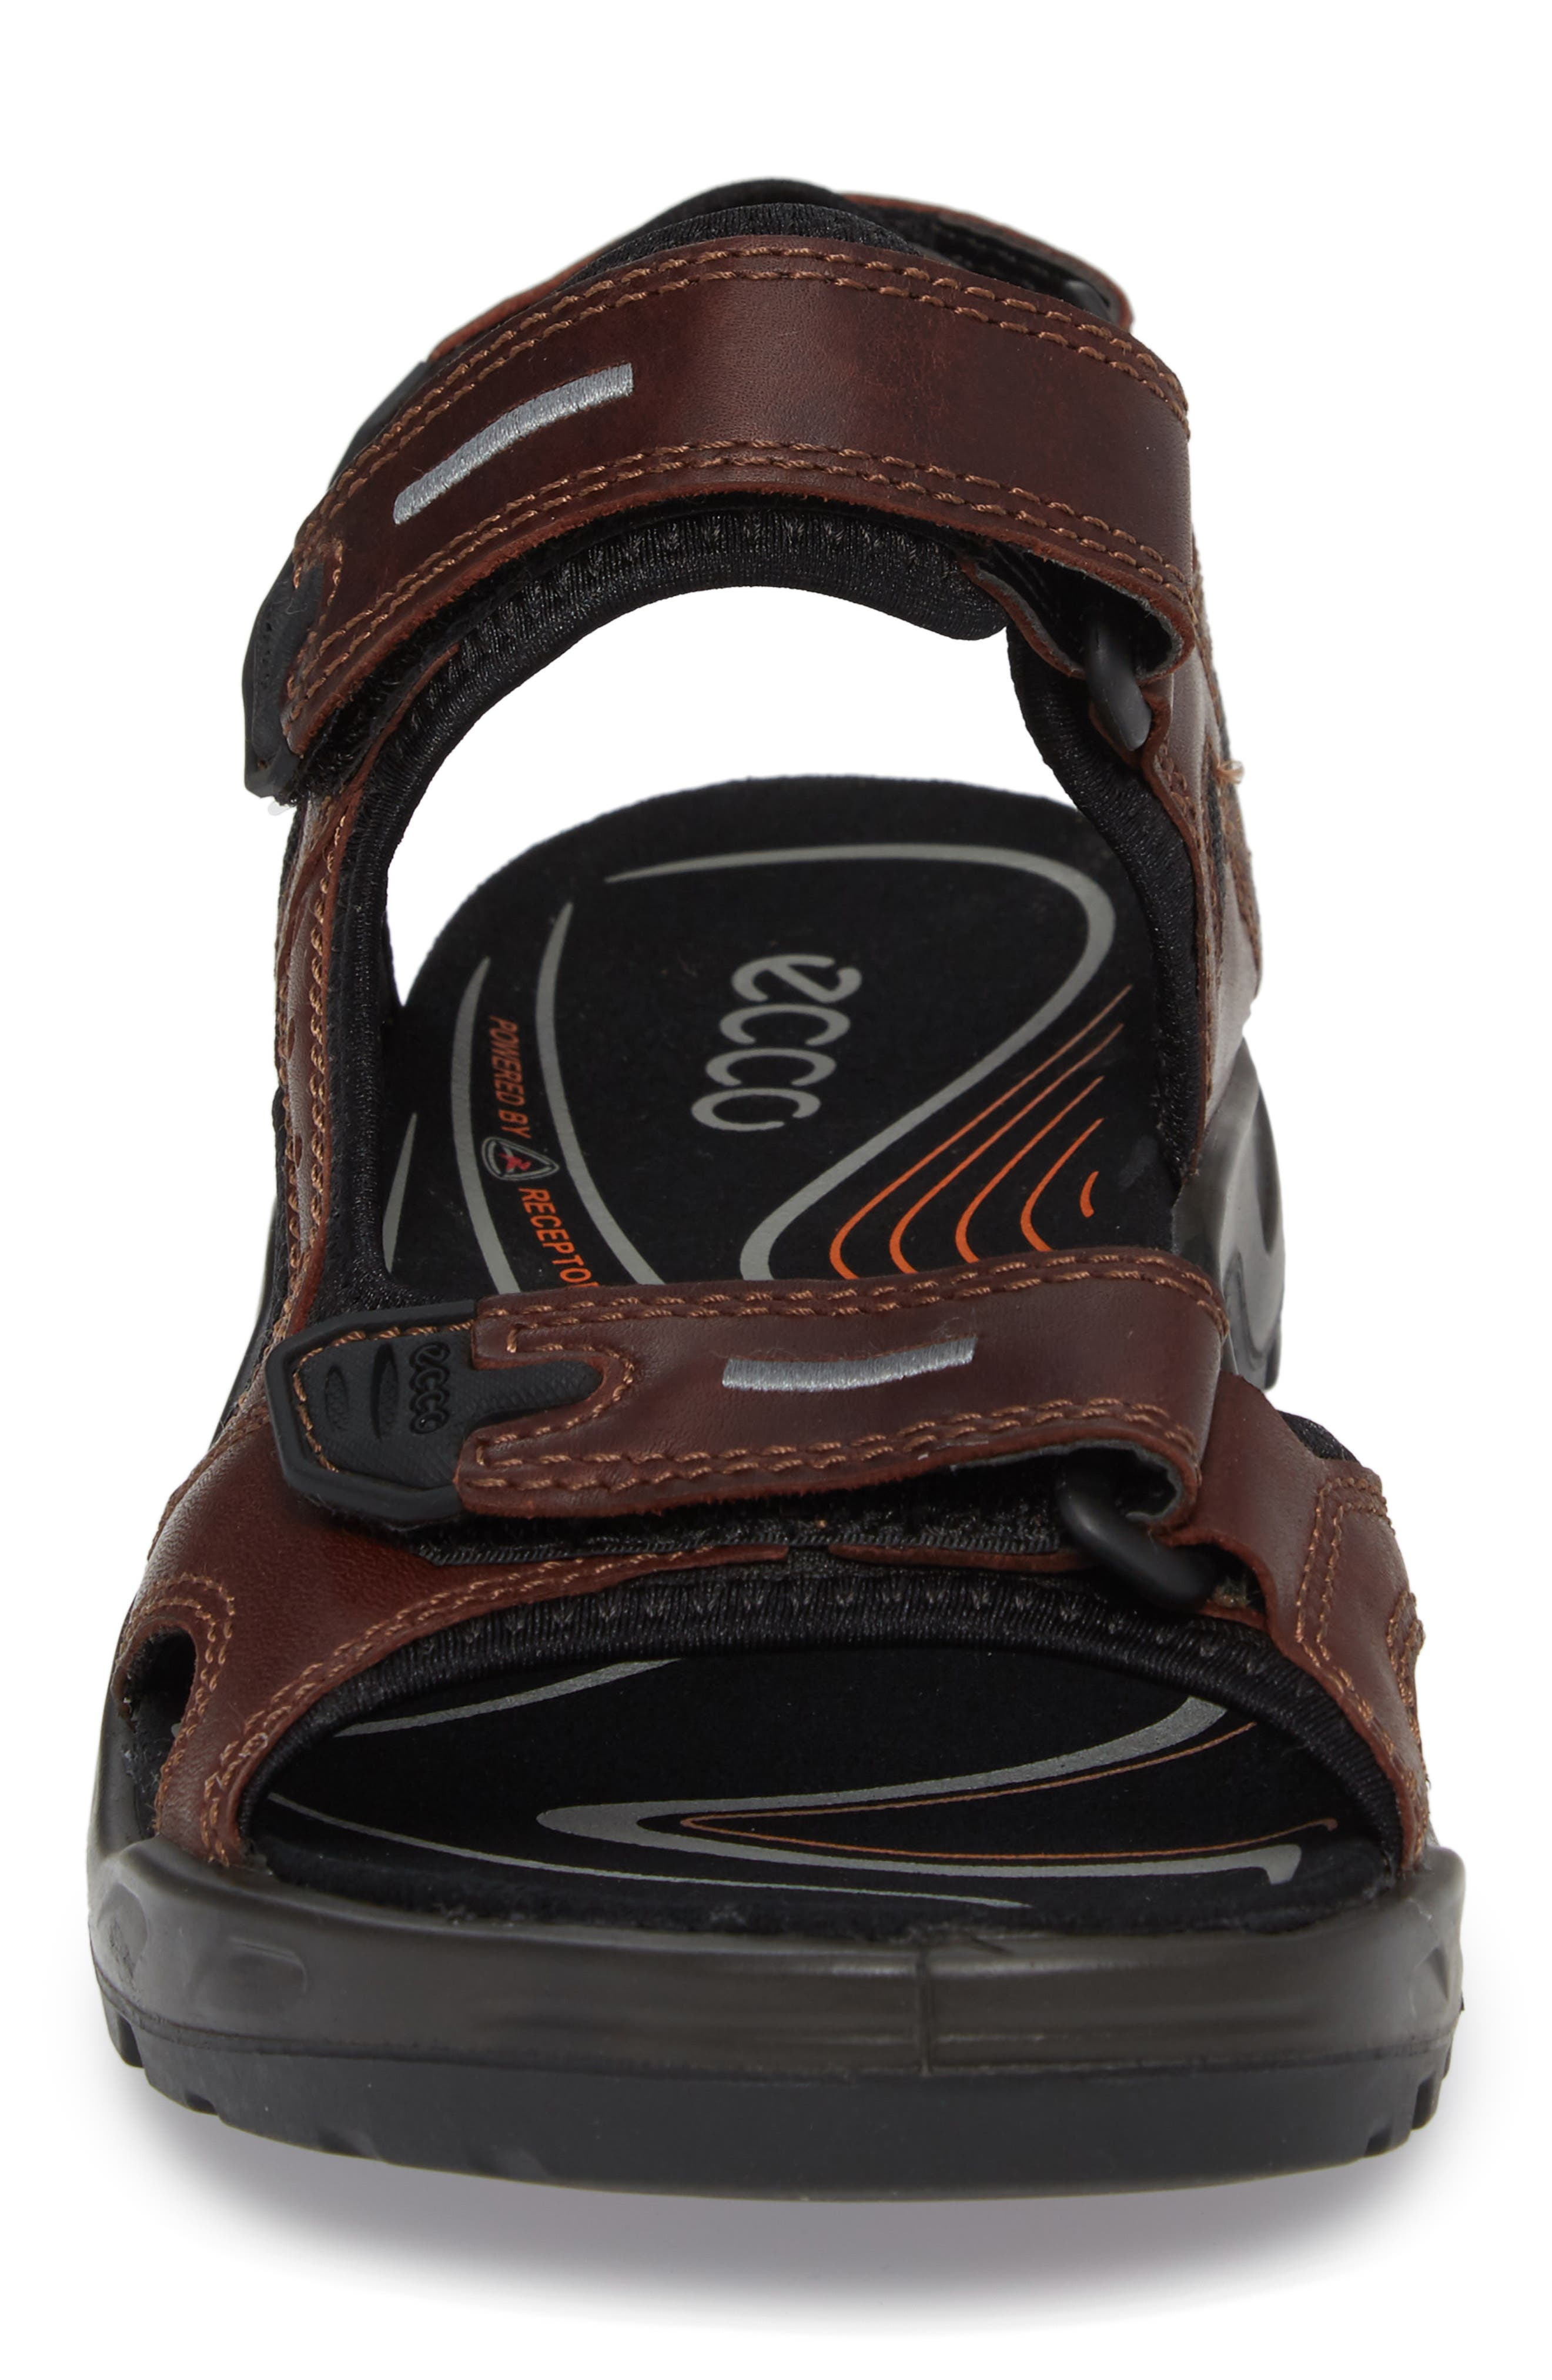 Offroad Sport Sandal,                             Alternate thumbnail 4, color,                             Brandy Leather